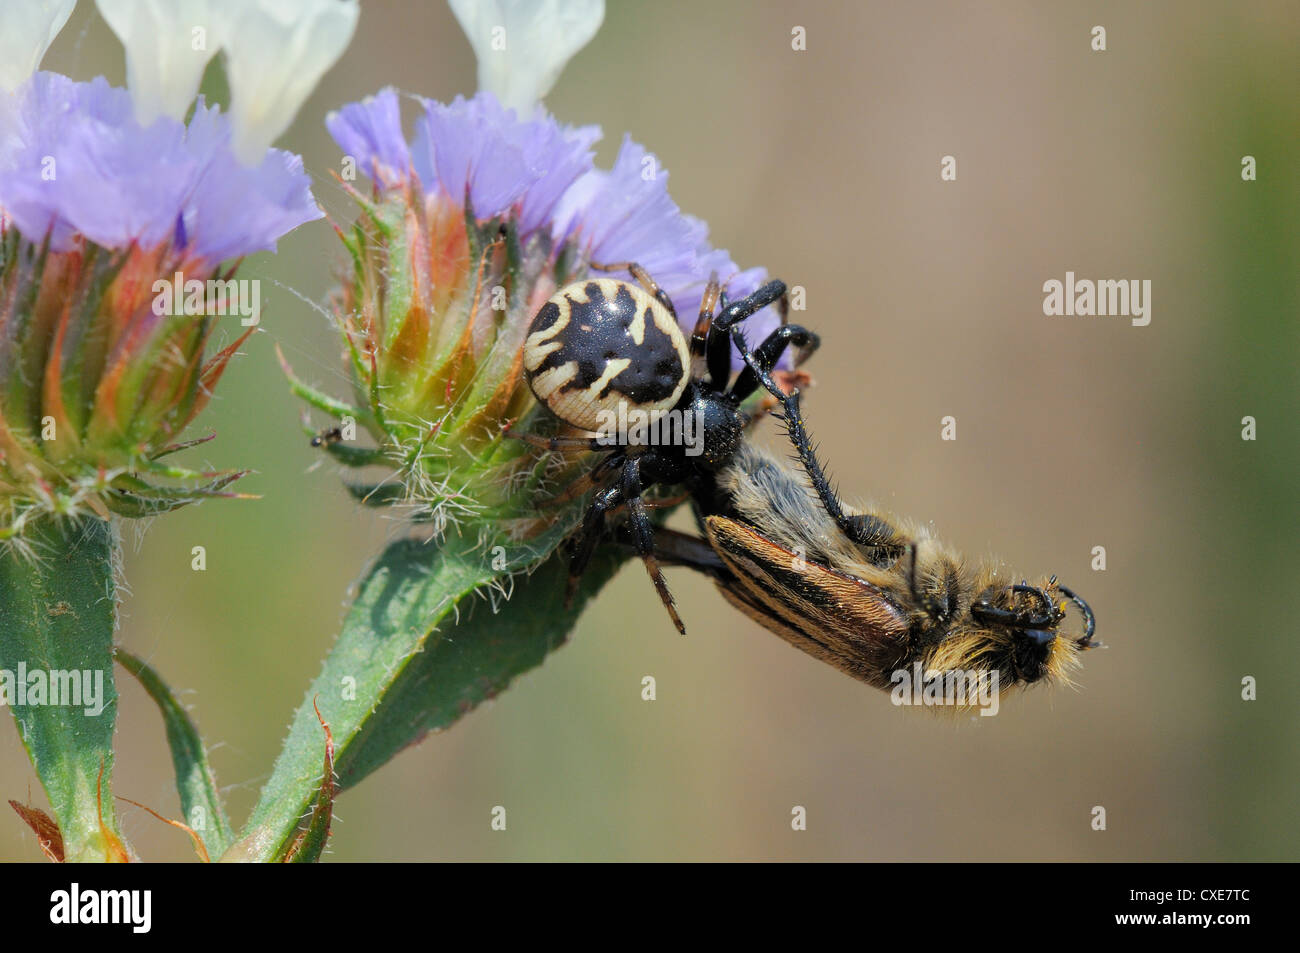 Crab spider (Synema globosum) with bumblebee, bumble bee, bee scarab beetle (Eulasia vittata) prey, Lesbos, Greece - Stock Image